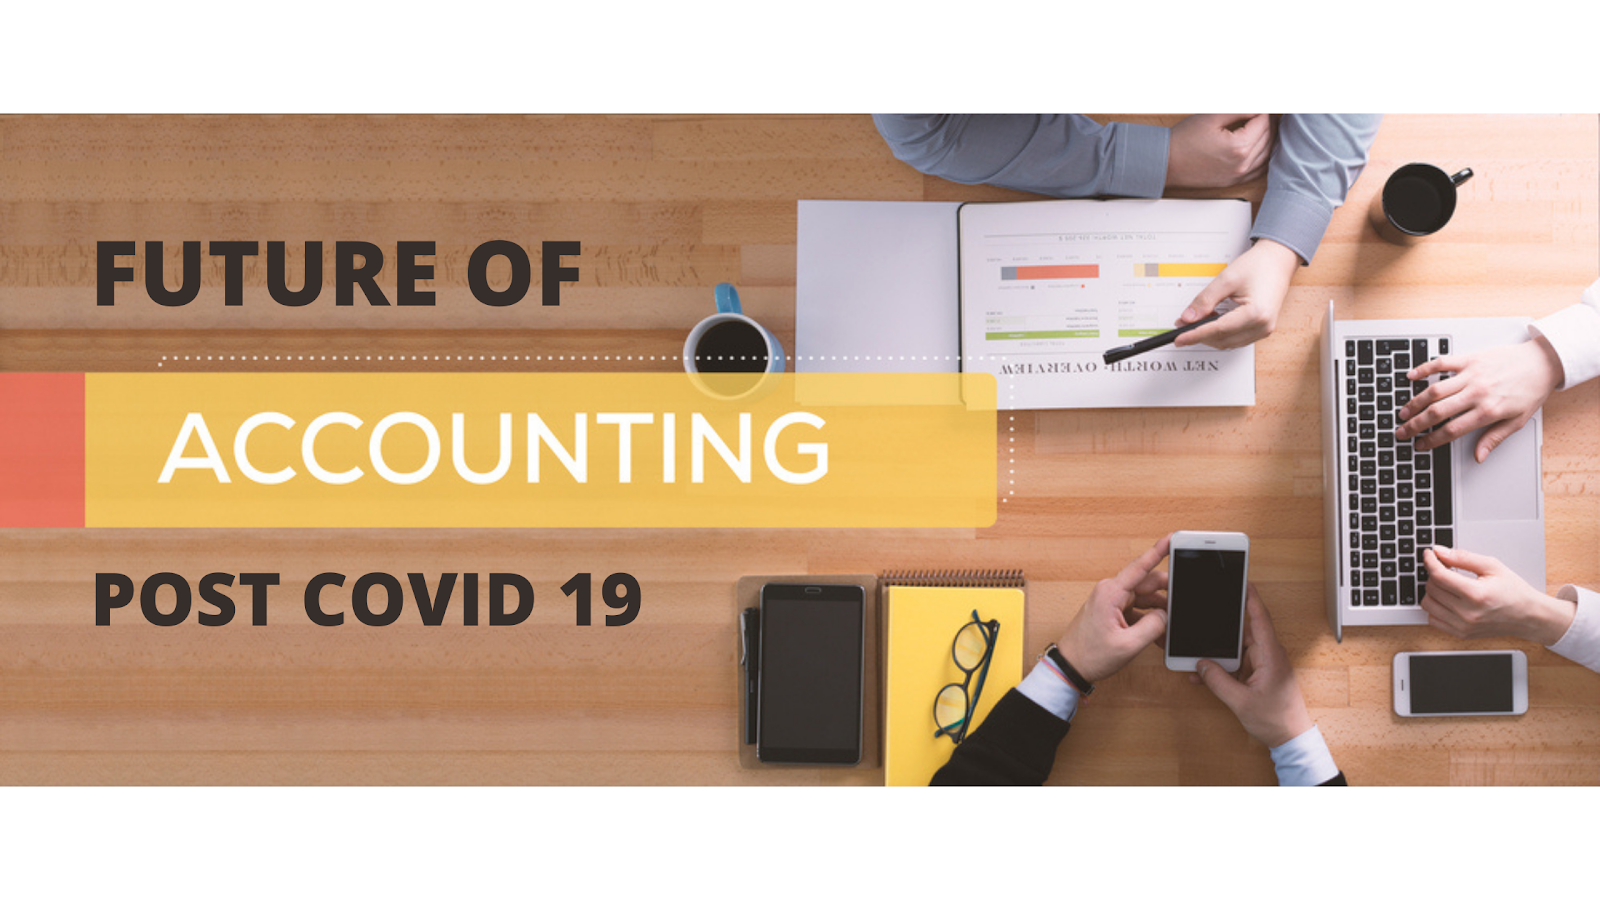 Future Of Accounting Professionals Post Covid 19